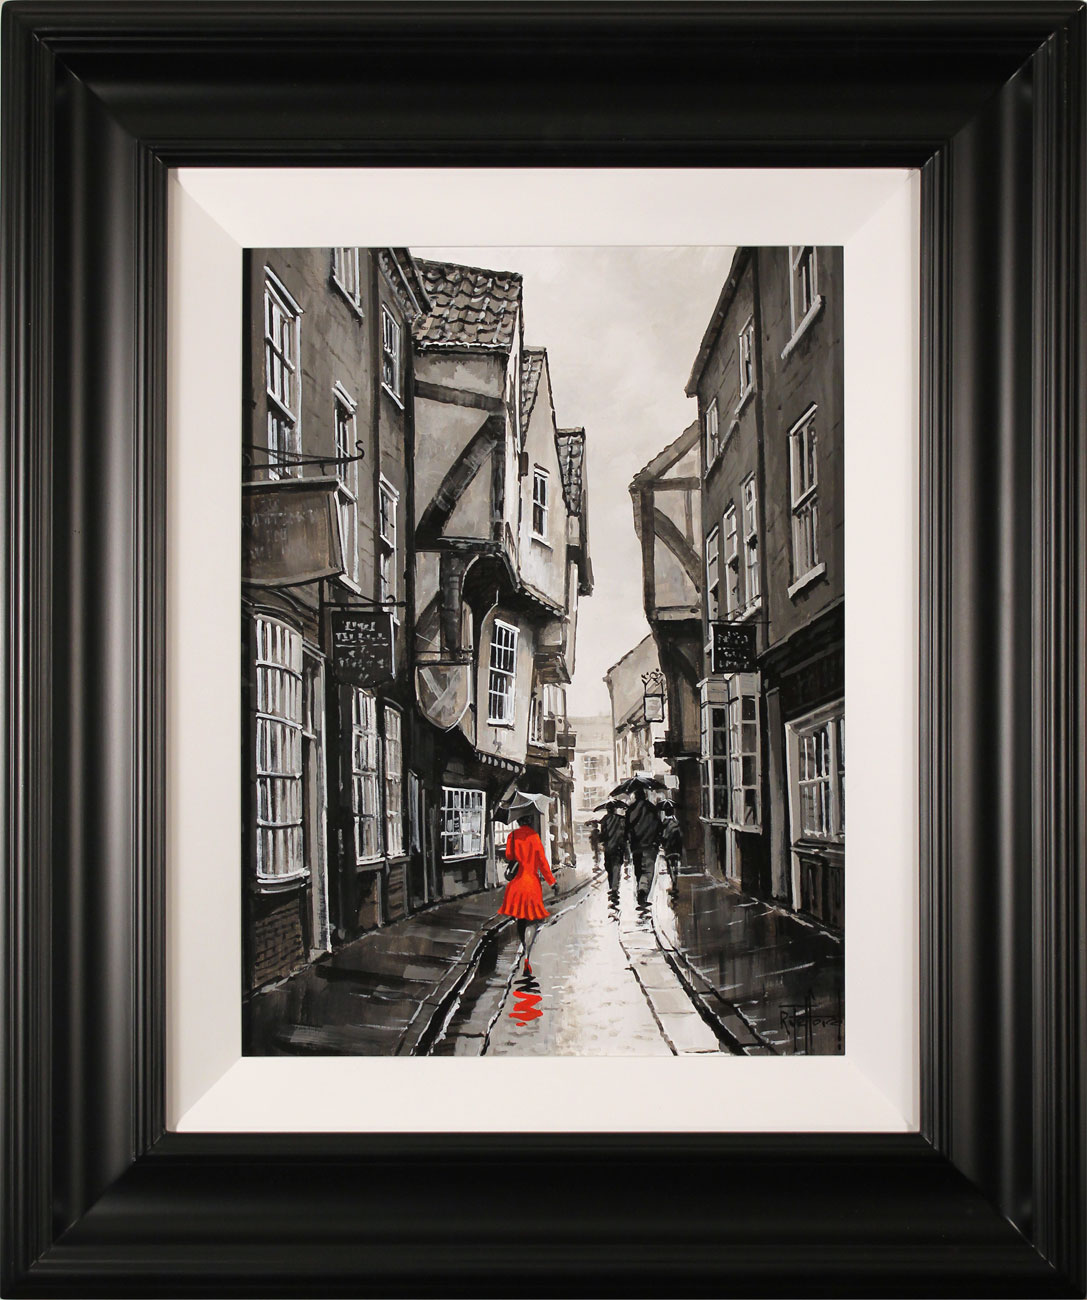 Richard Telford, Original oil painting on panel, The Shambles, York. Click to enlarge